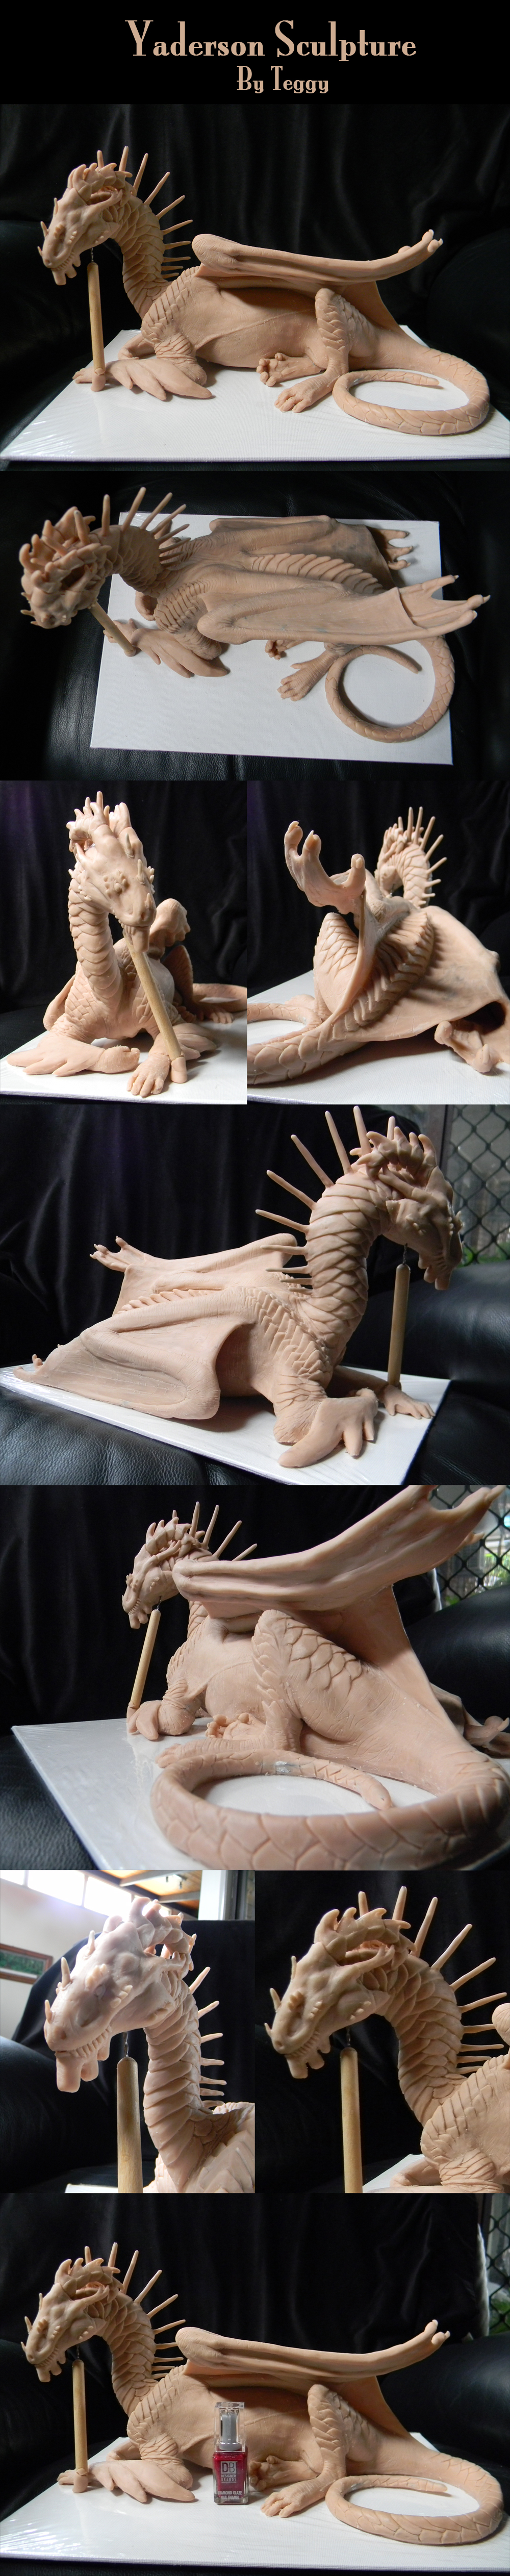 Finished Yaderson Sculpture by Teggy